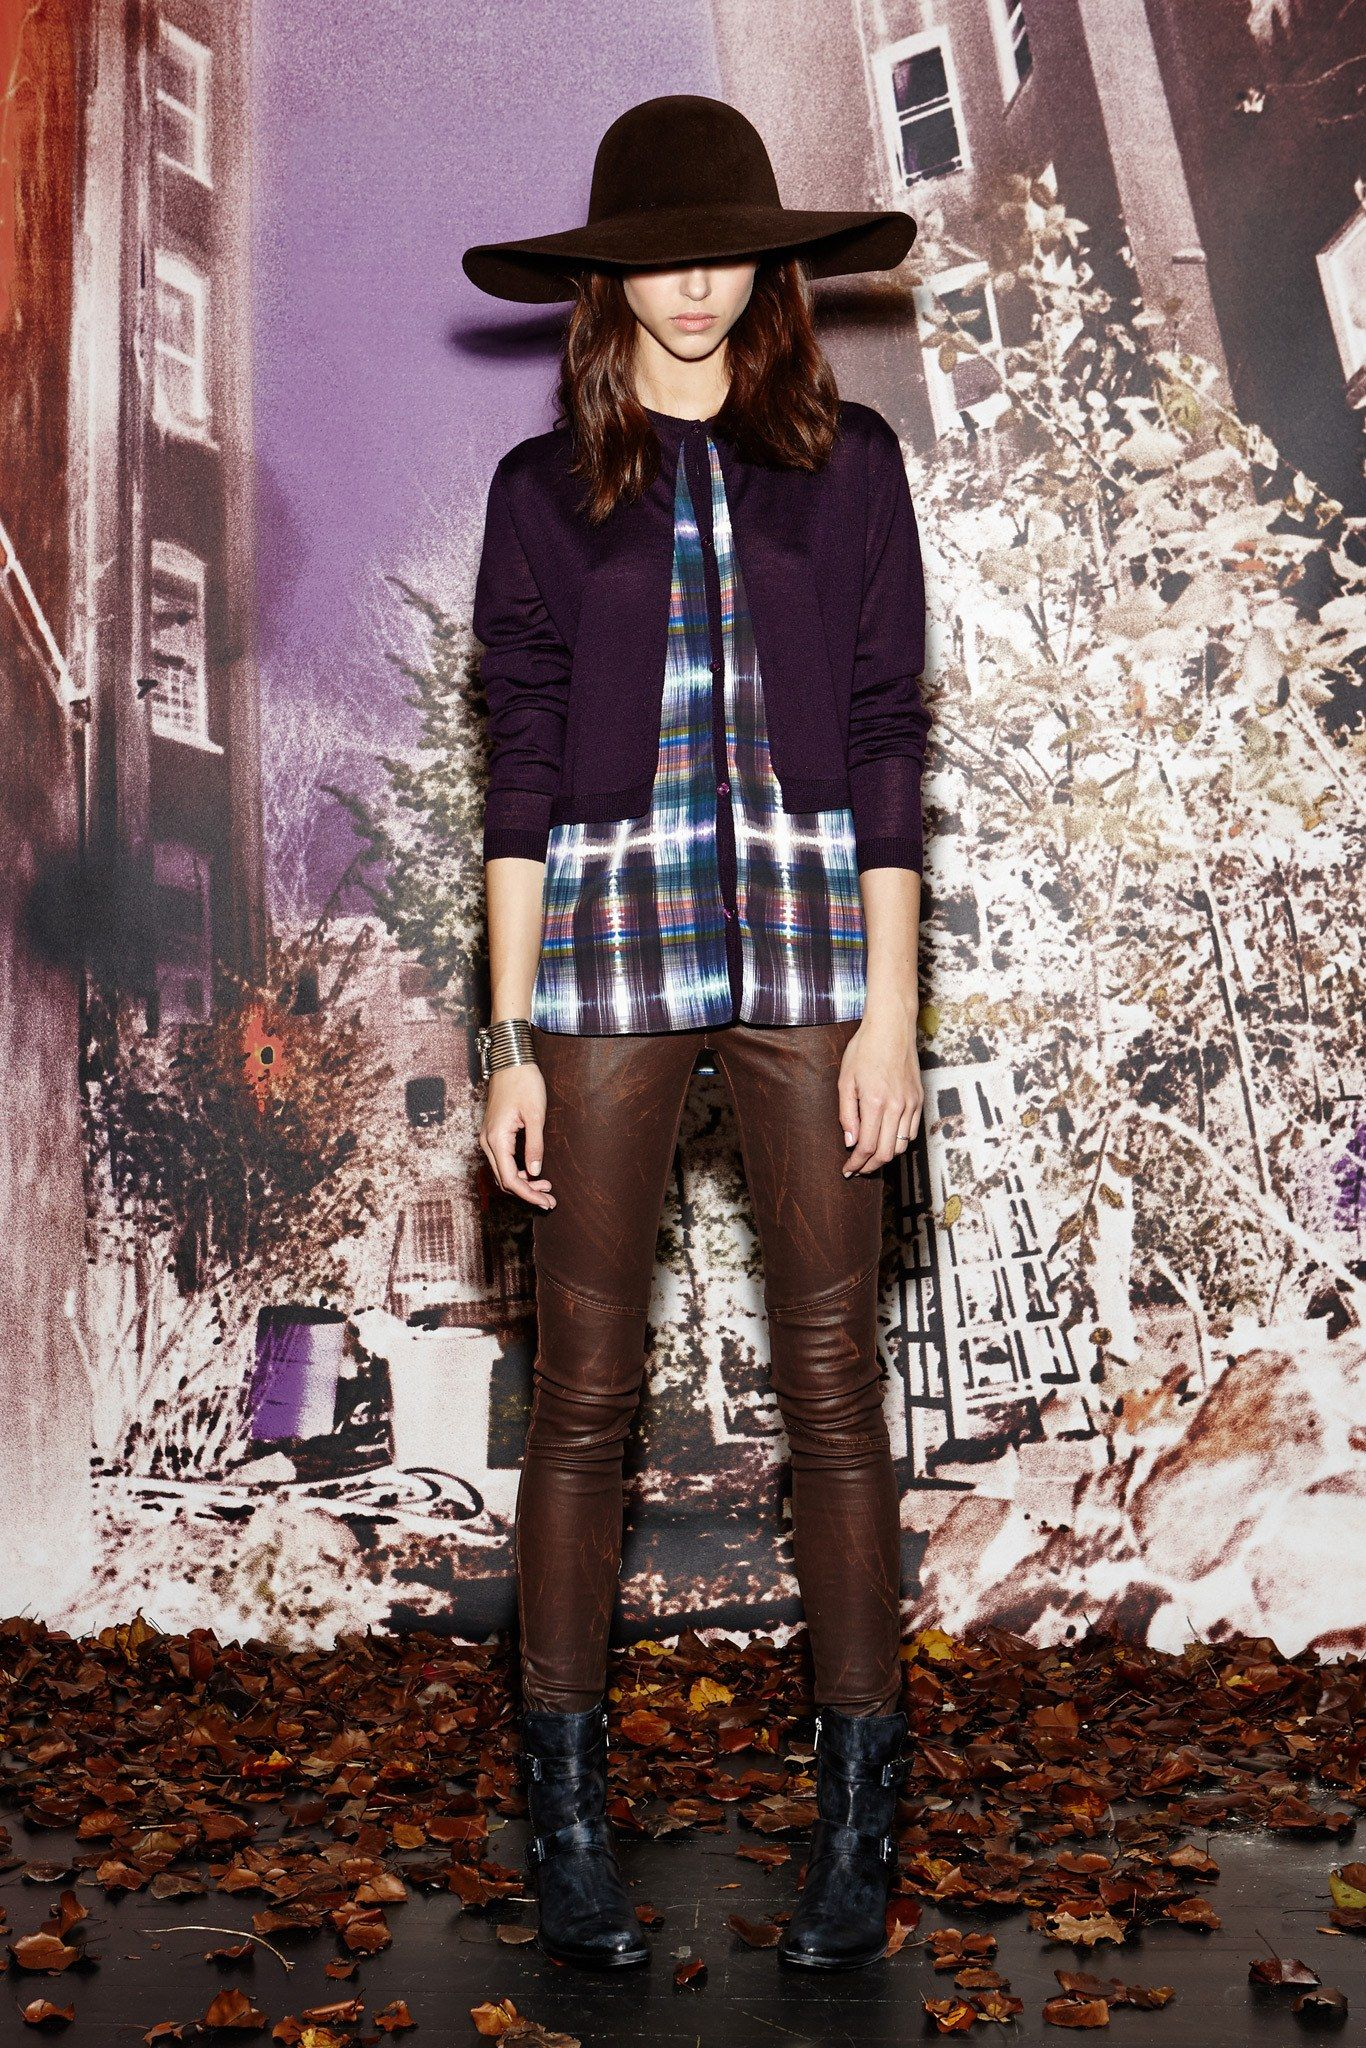 Nicole Miller Pre-Fall 2014 Collection Photos - Vogue